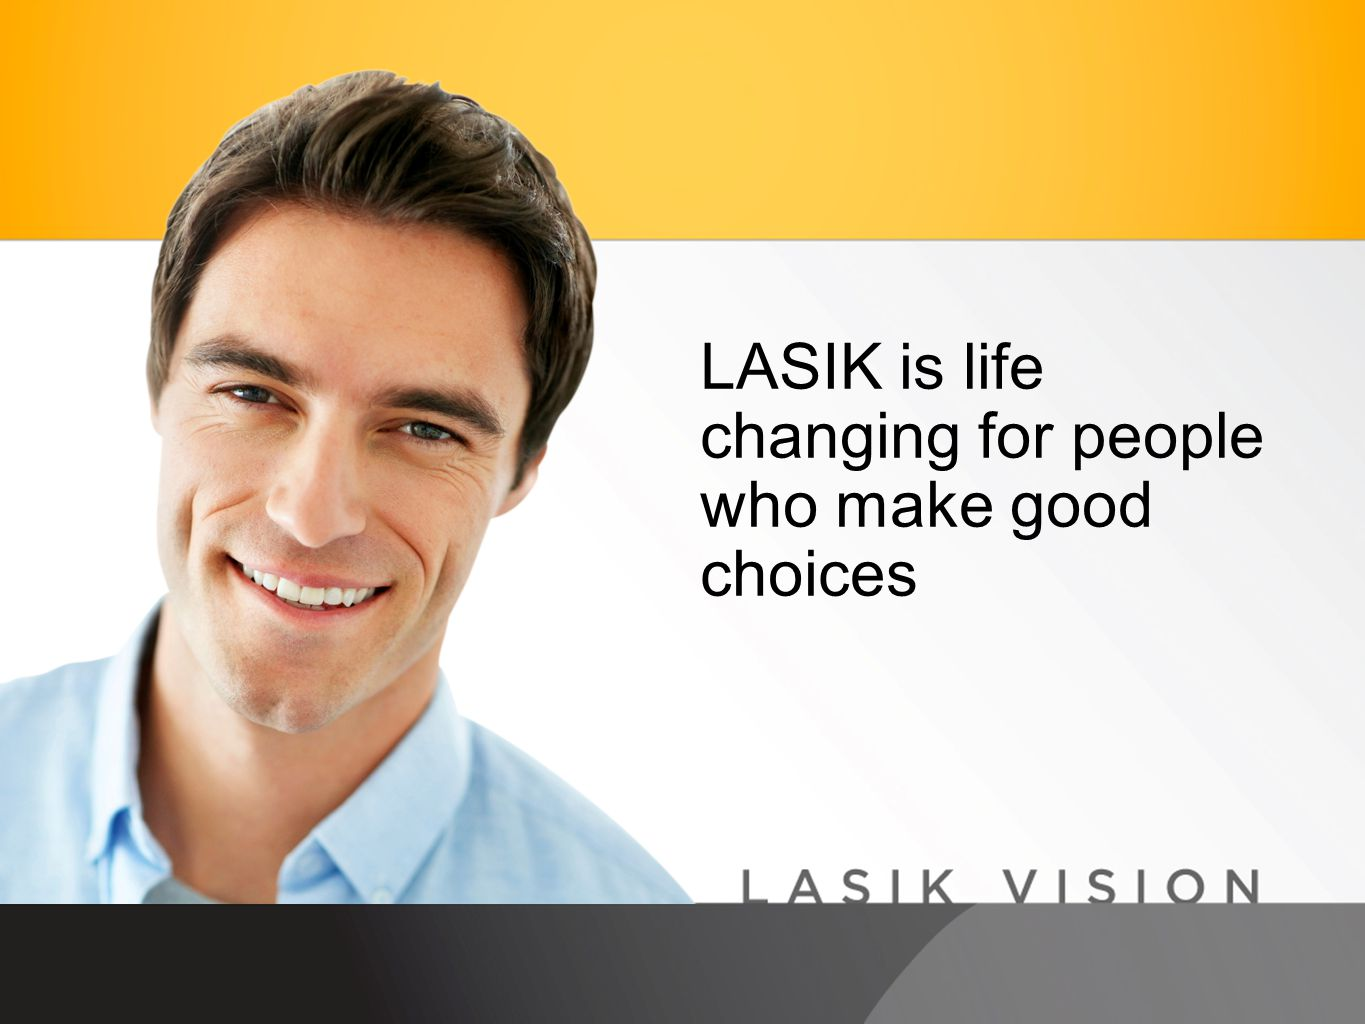 LASIK is life changing for people who make good choices